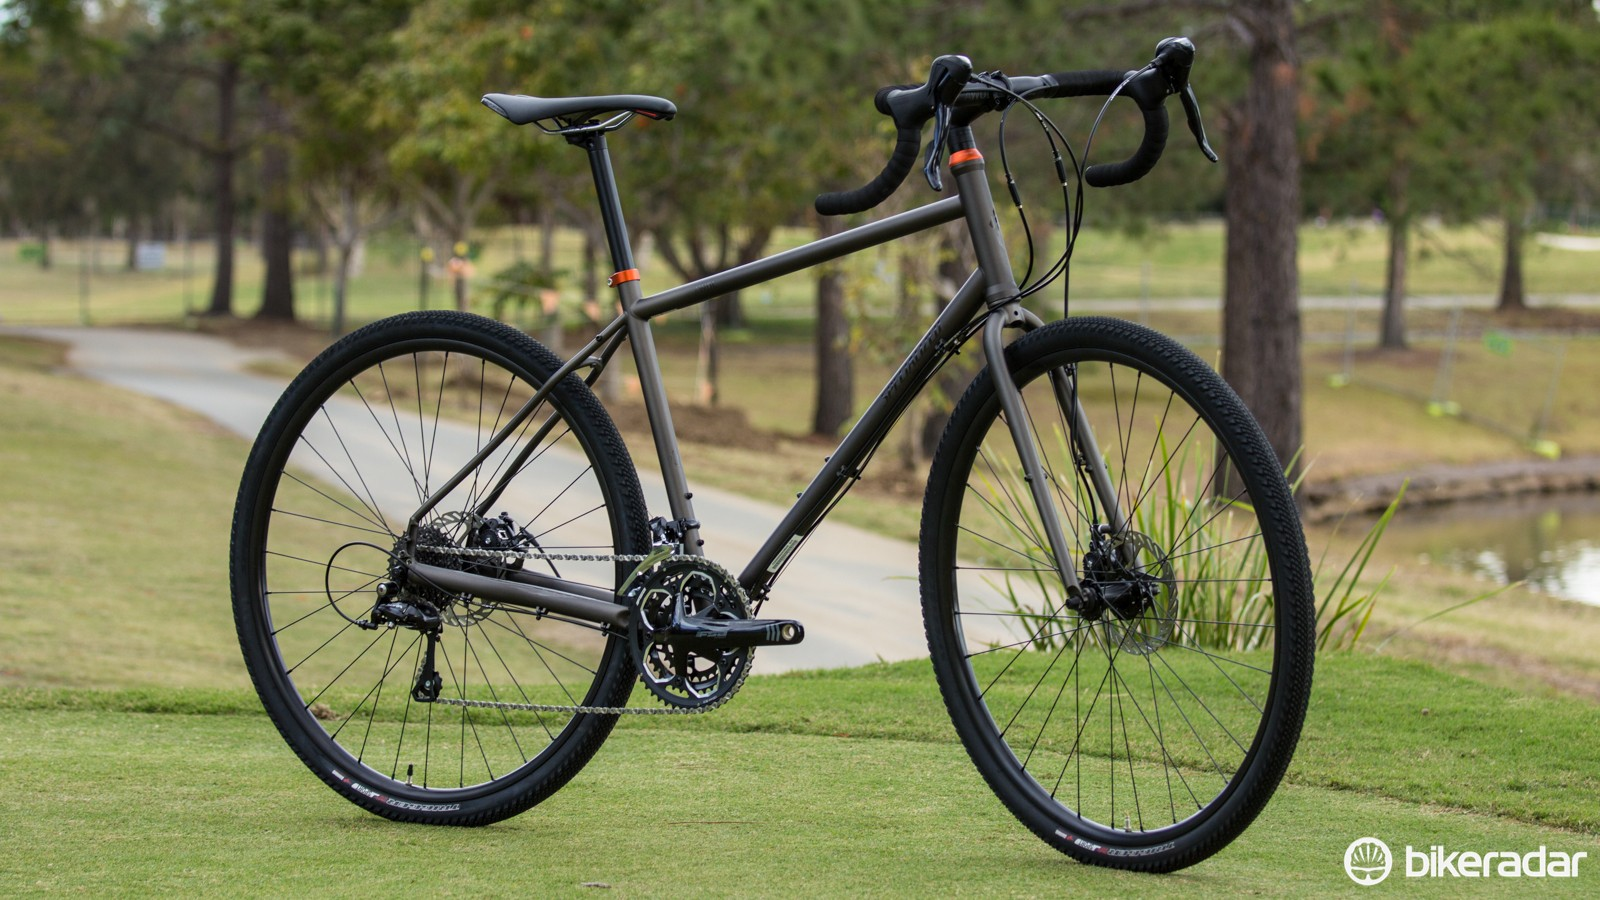 The Specialized AWOL (US$TBC / AU$1,599 / £TBC) is an adventure tourer that's ready to double as a daily commuter